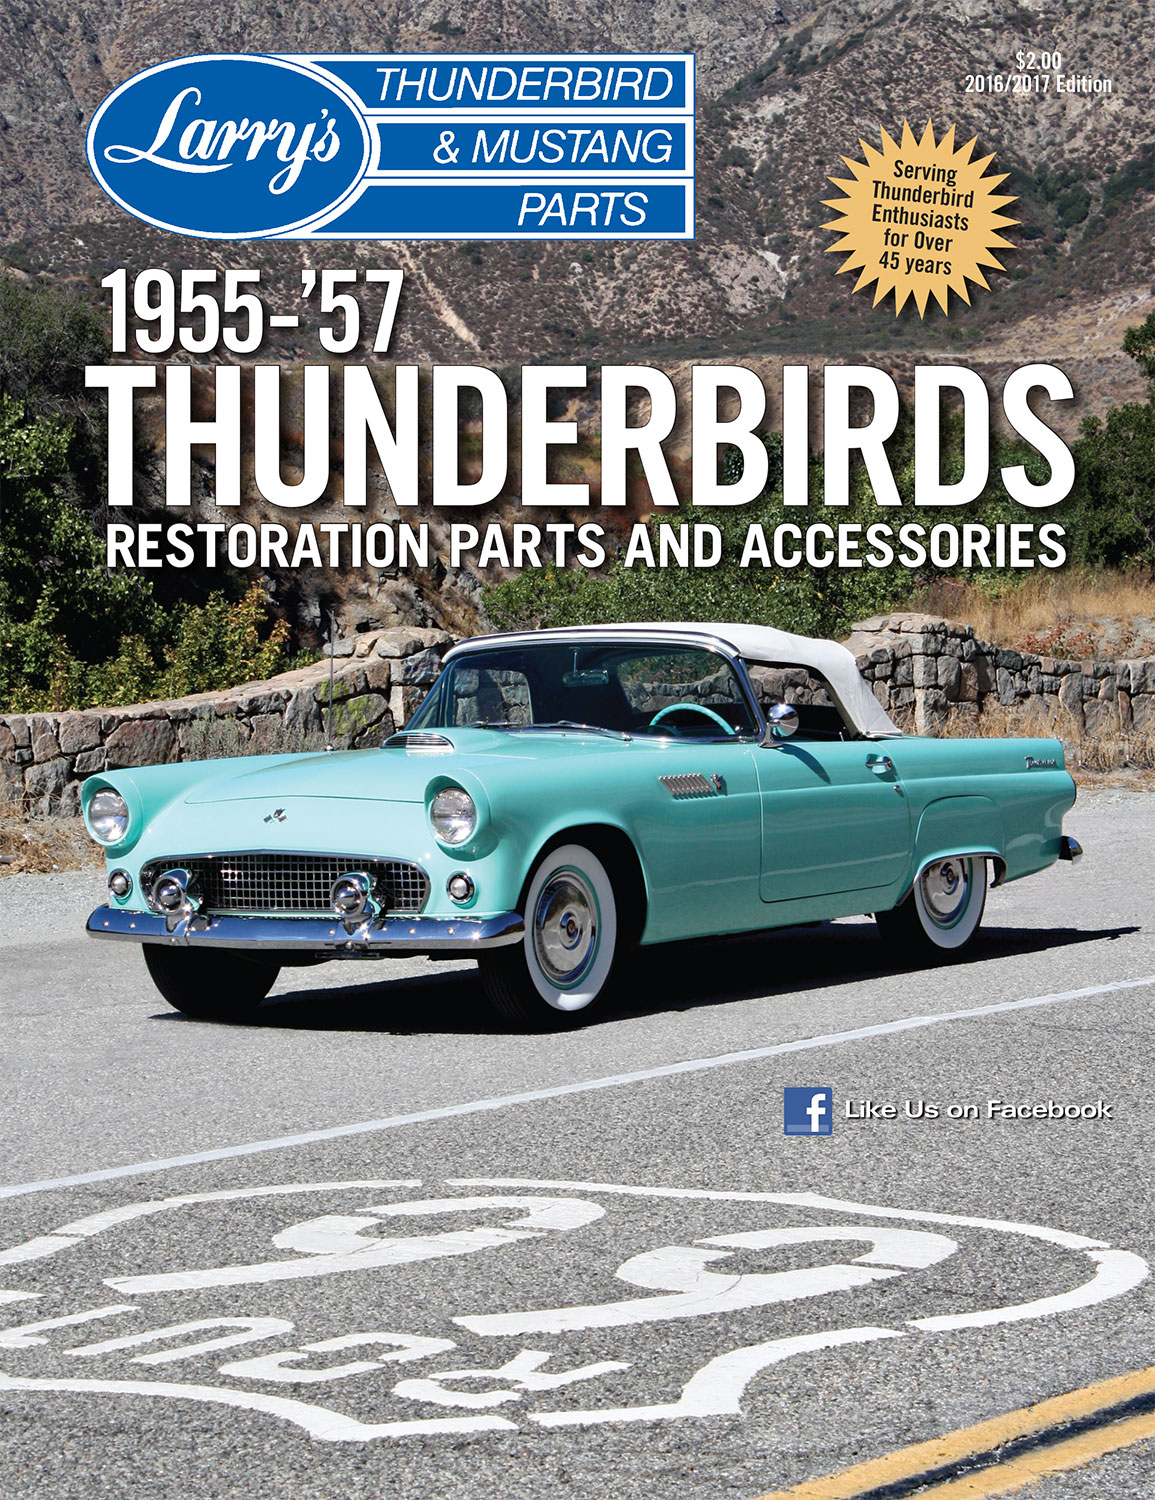 ltb 2016 littlebird home larry's thunderbird & mustang parts 1955 thunderbird fuse box location at suagrazia.org